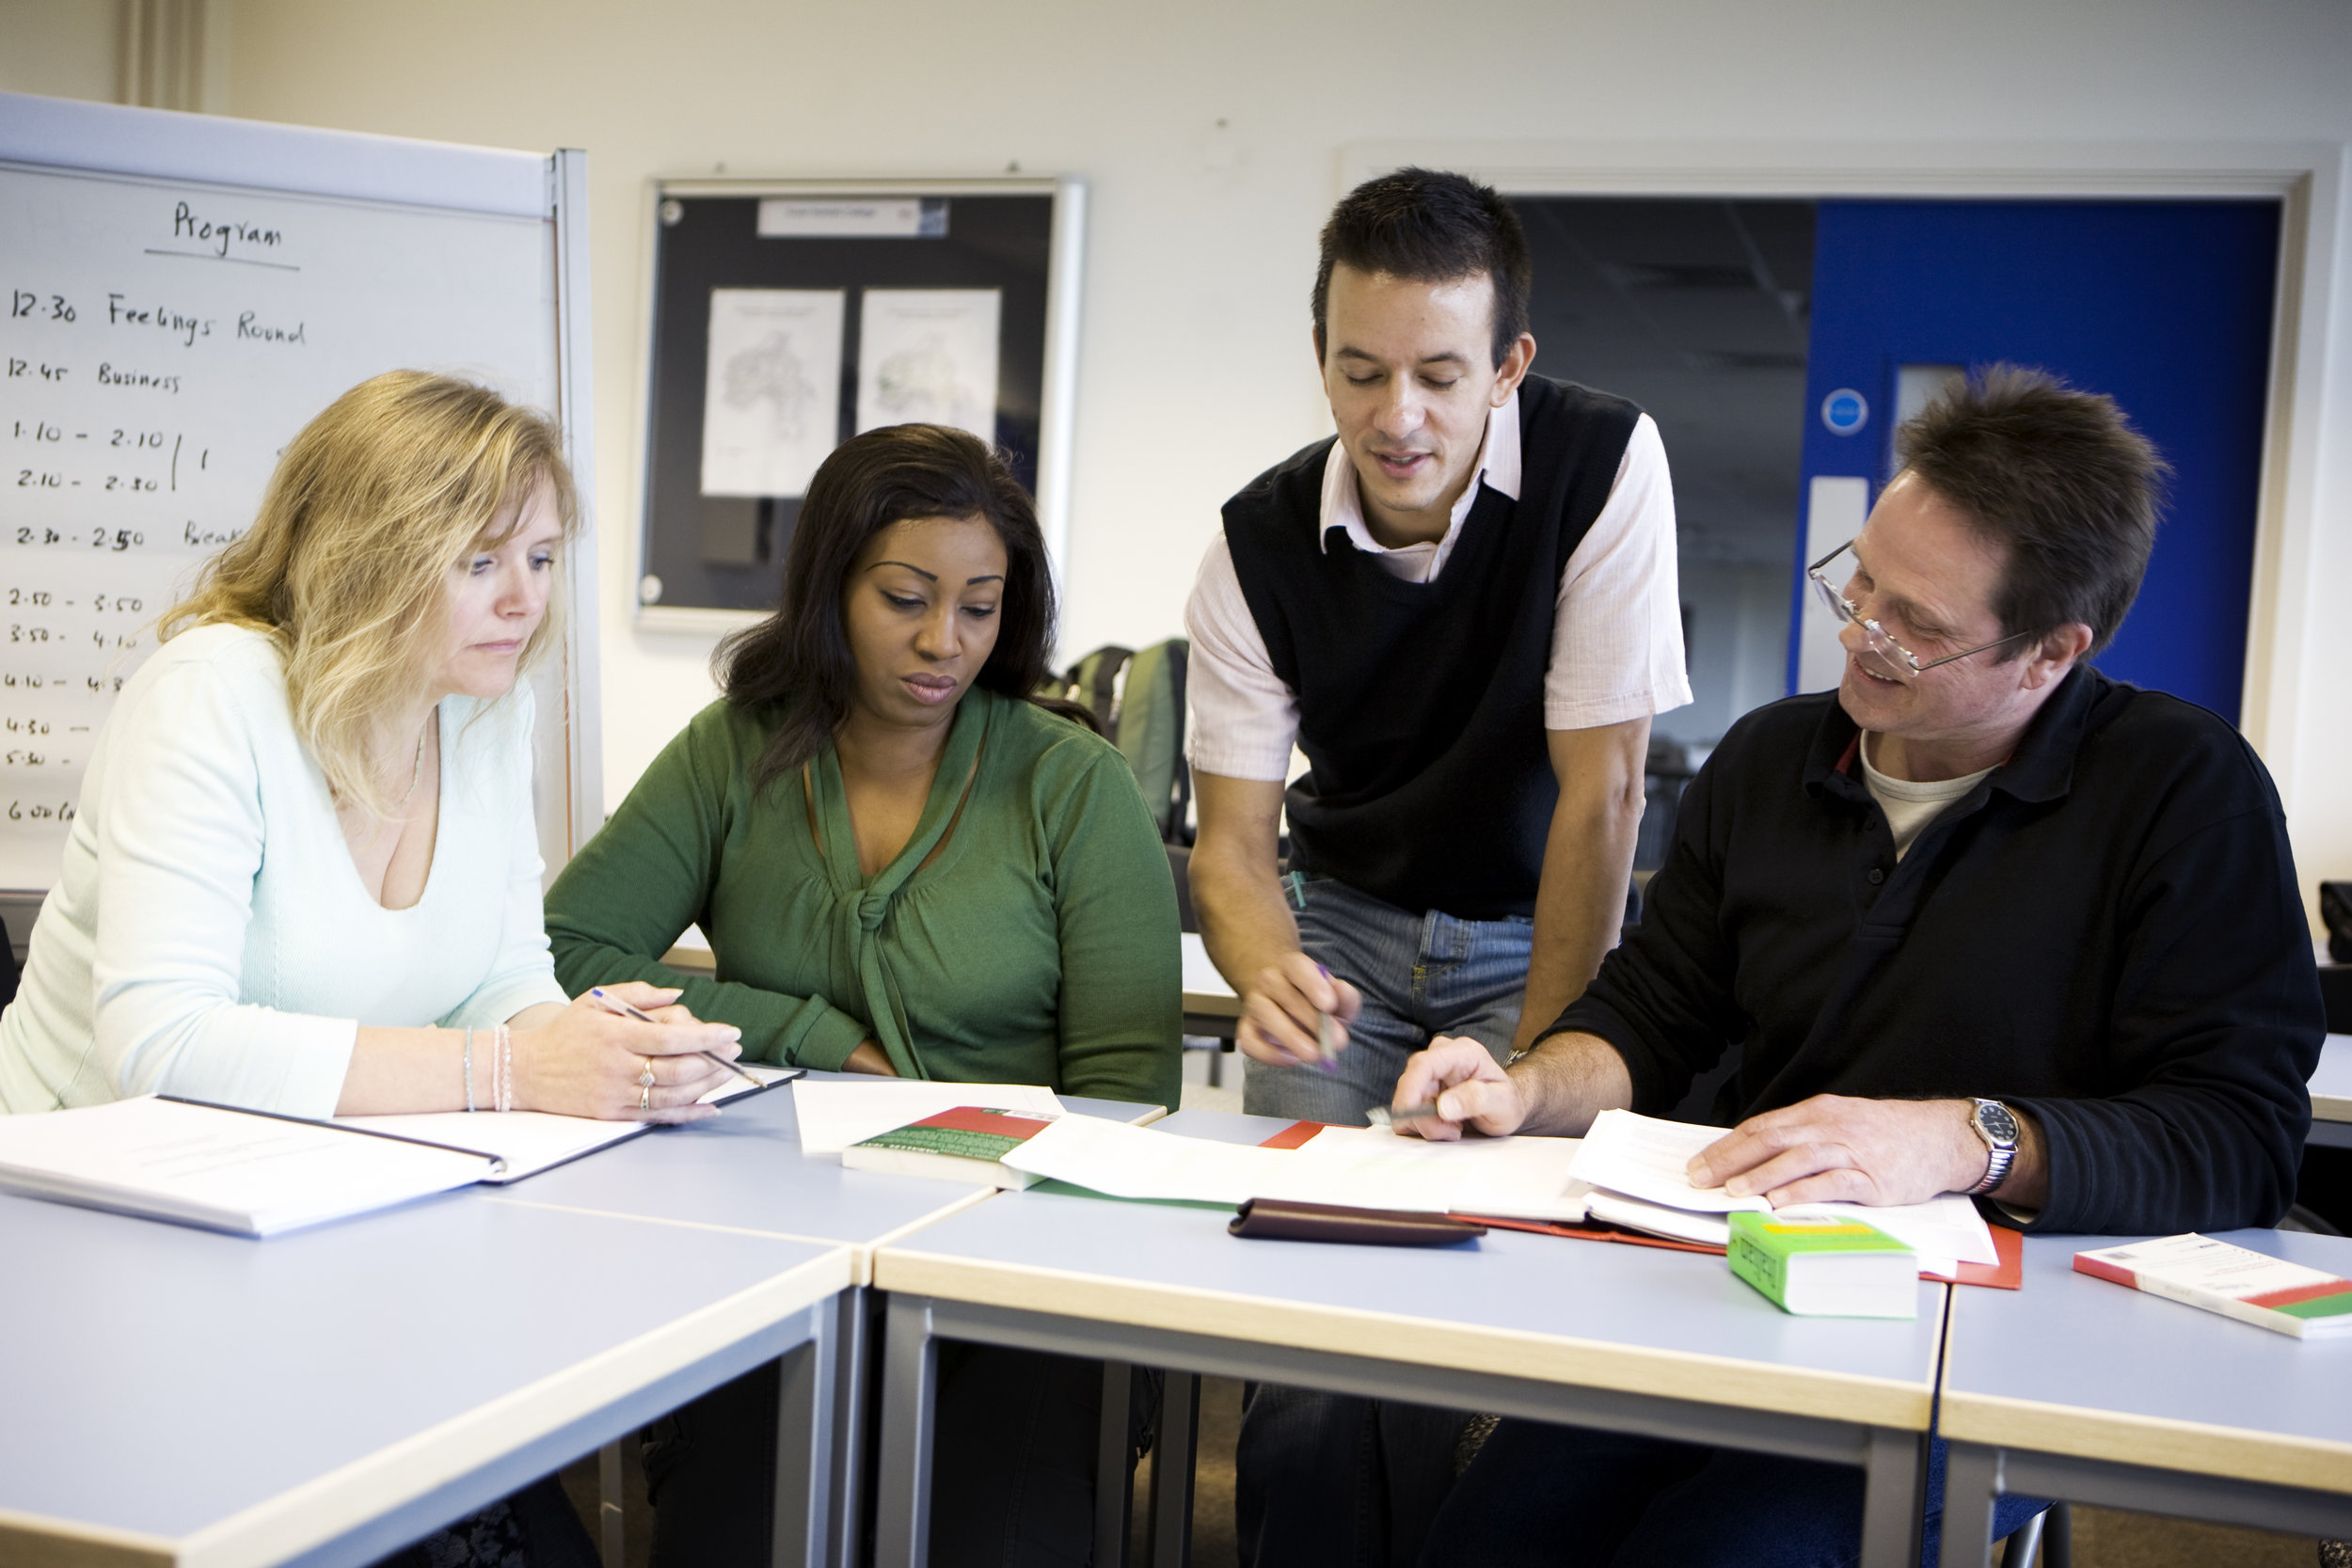 adult-education-a-teacher-helping-a-group-of-mature-students-157395895_4278x2852.jpeg